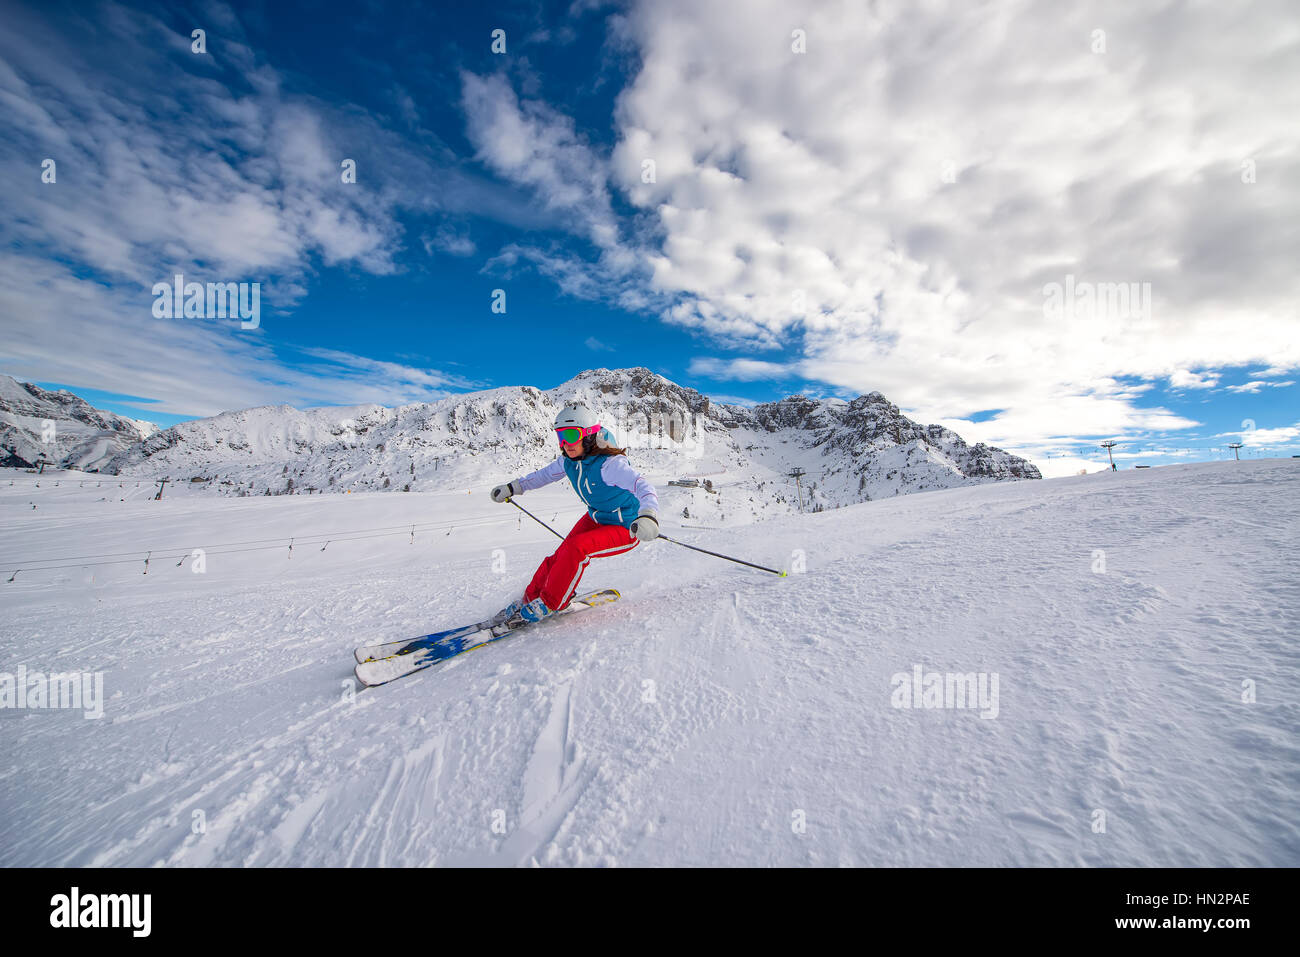 Girl skier in the alps ski area - Stock Image